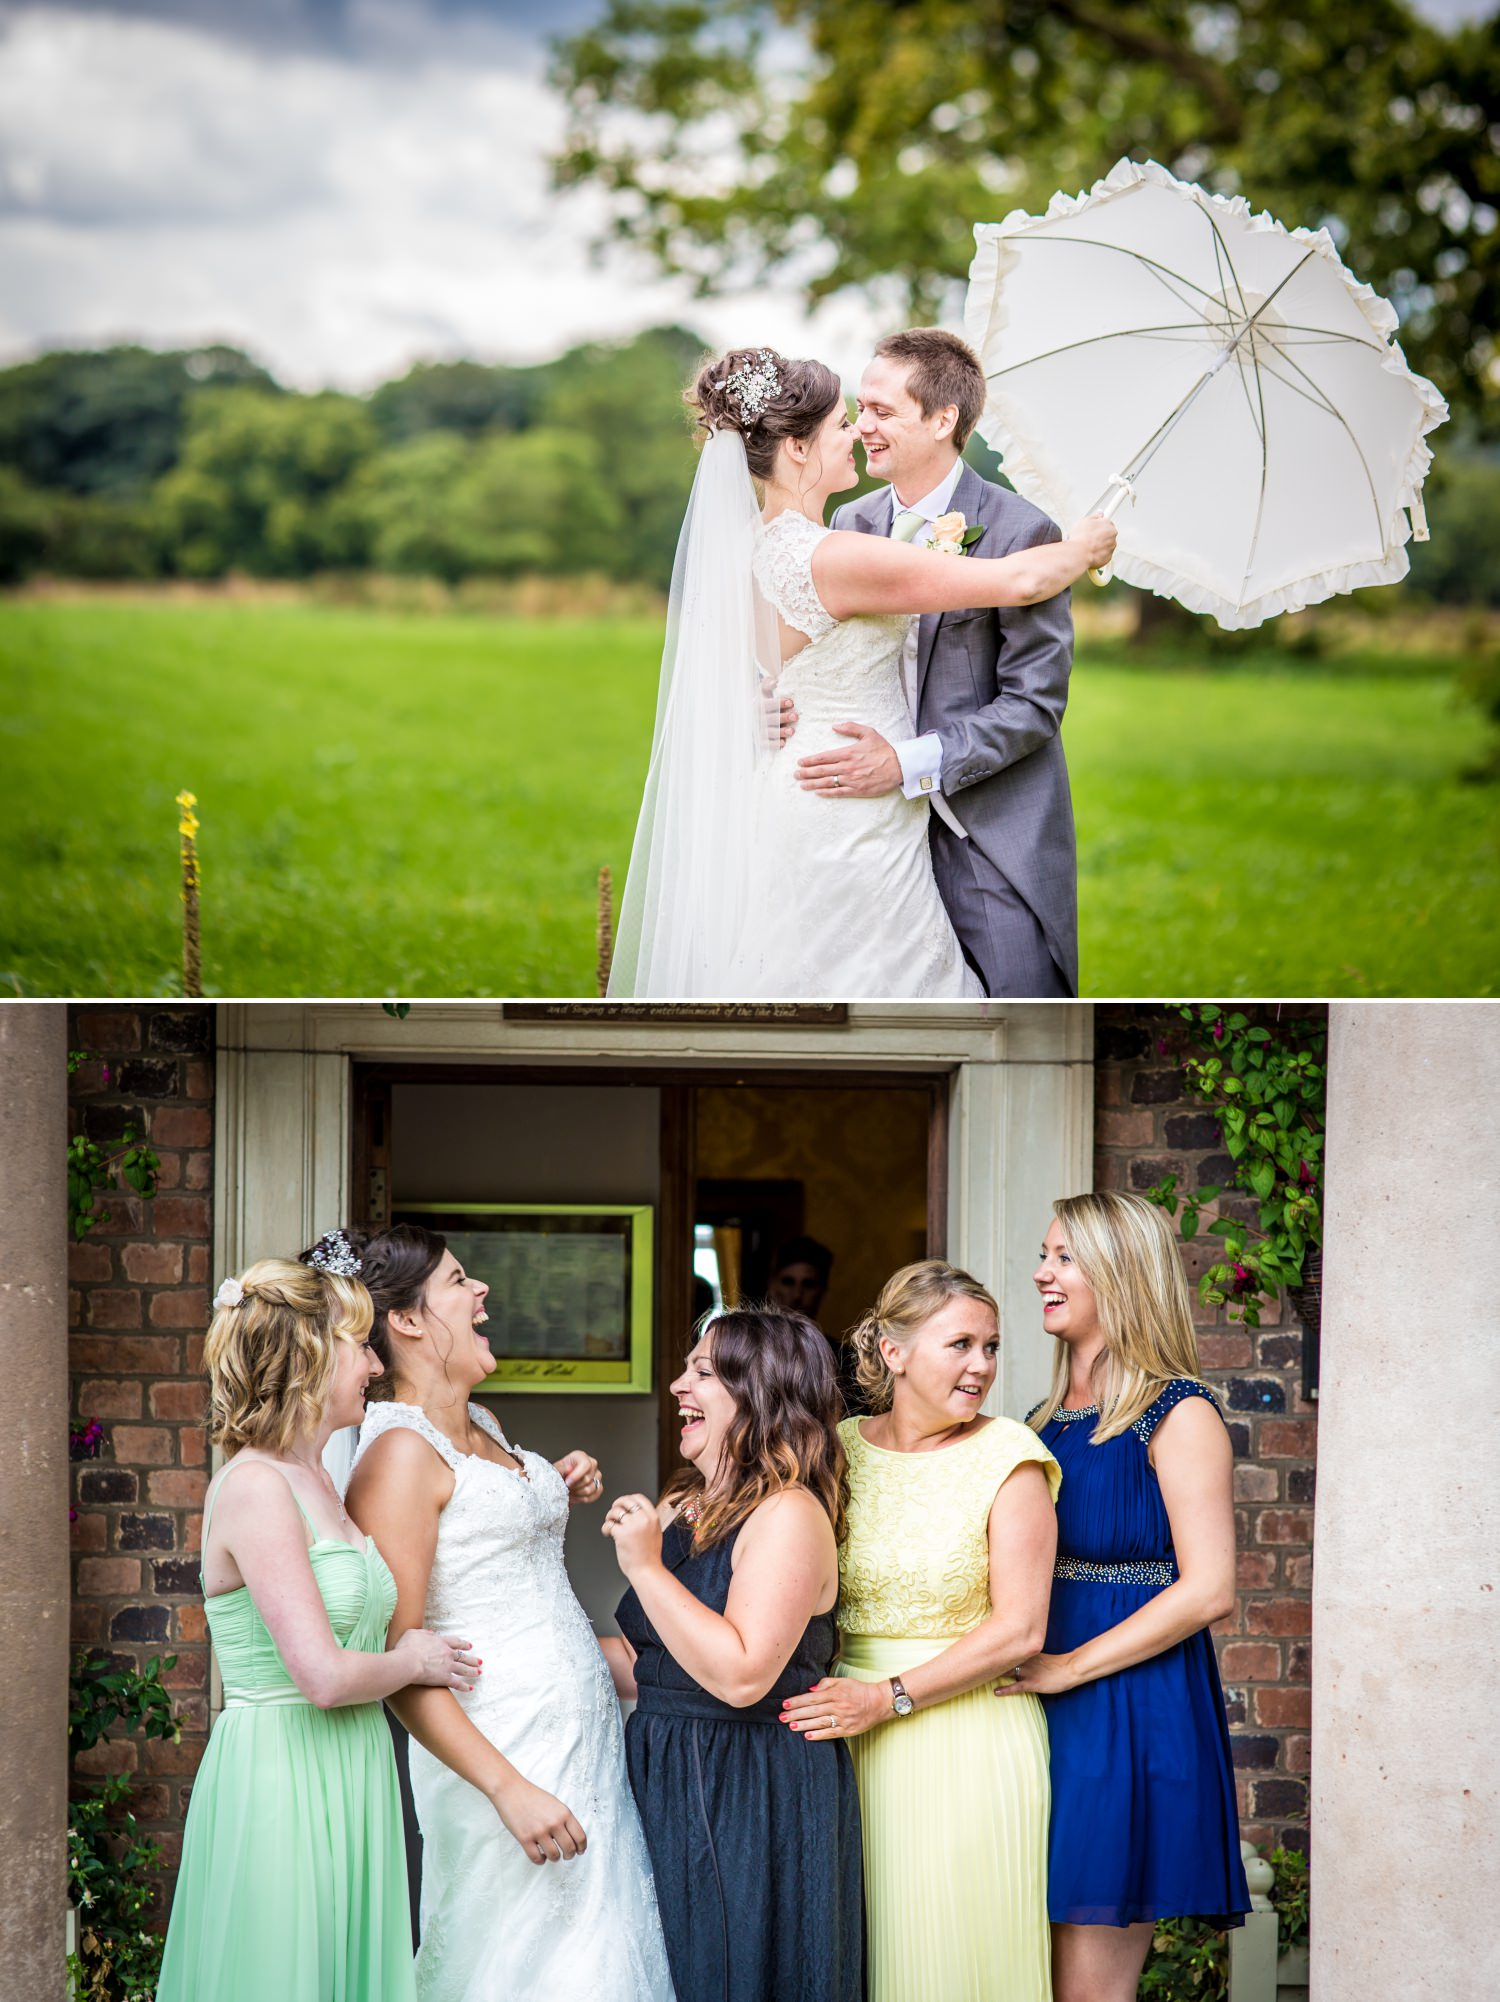 Wedding Photograph of bride and groom at Willington Hall, Cheshire